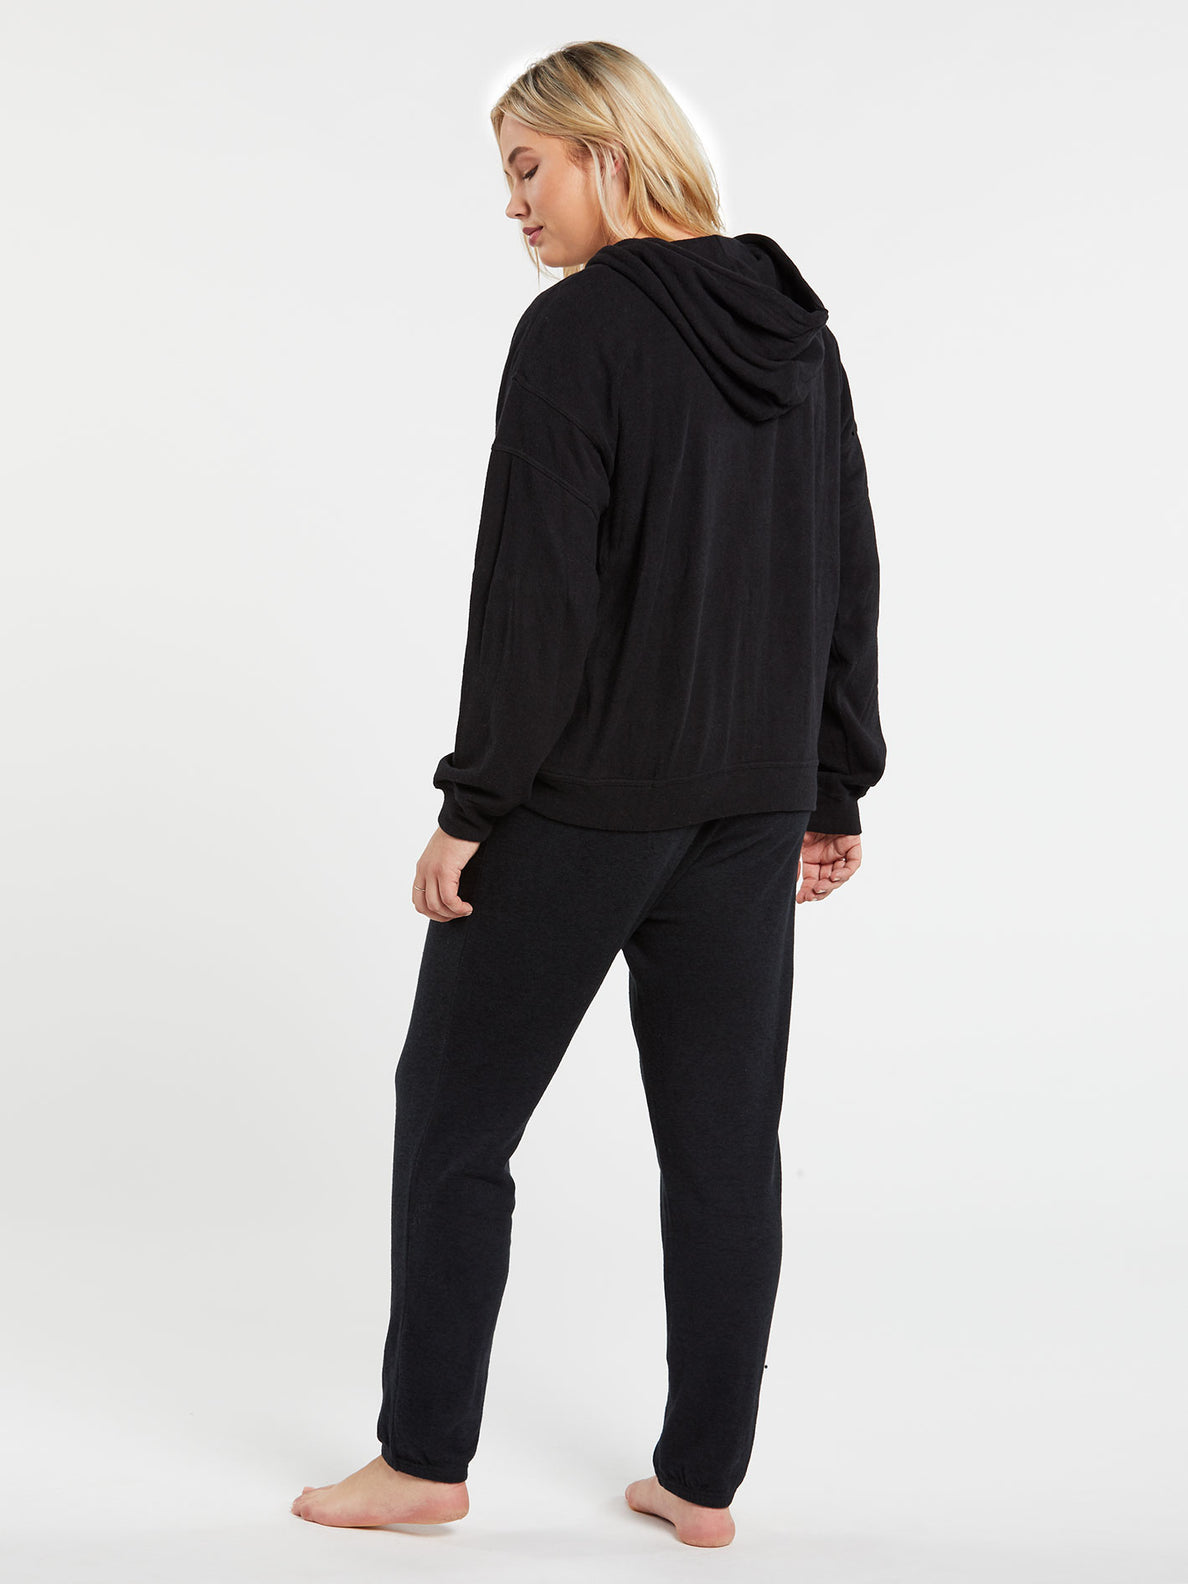 Lived In Lounge Zip Fleece - Black (B3111802_BLK) [11]